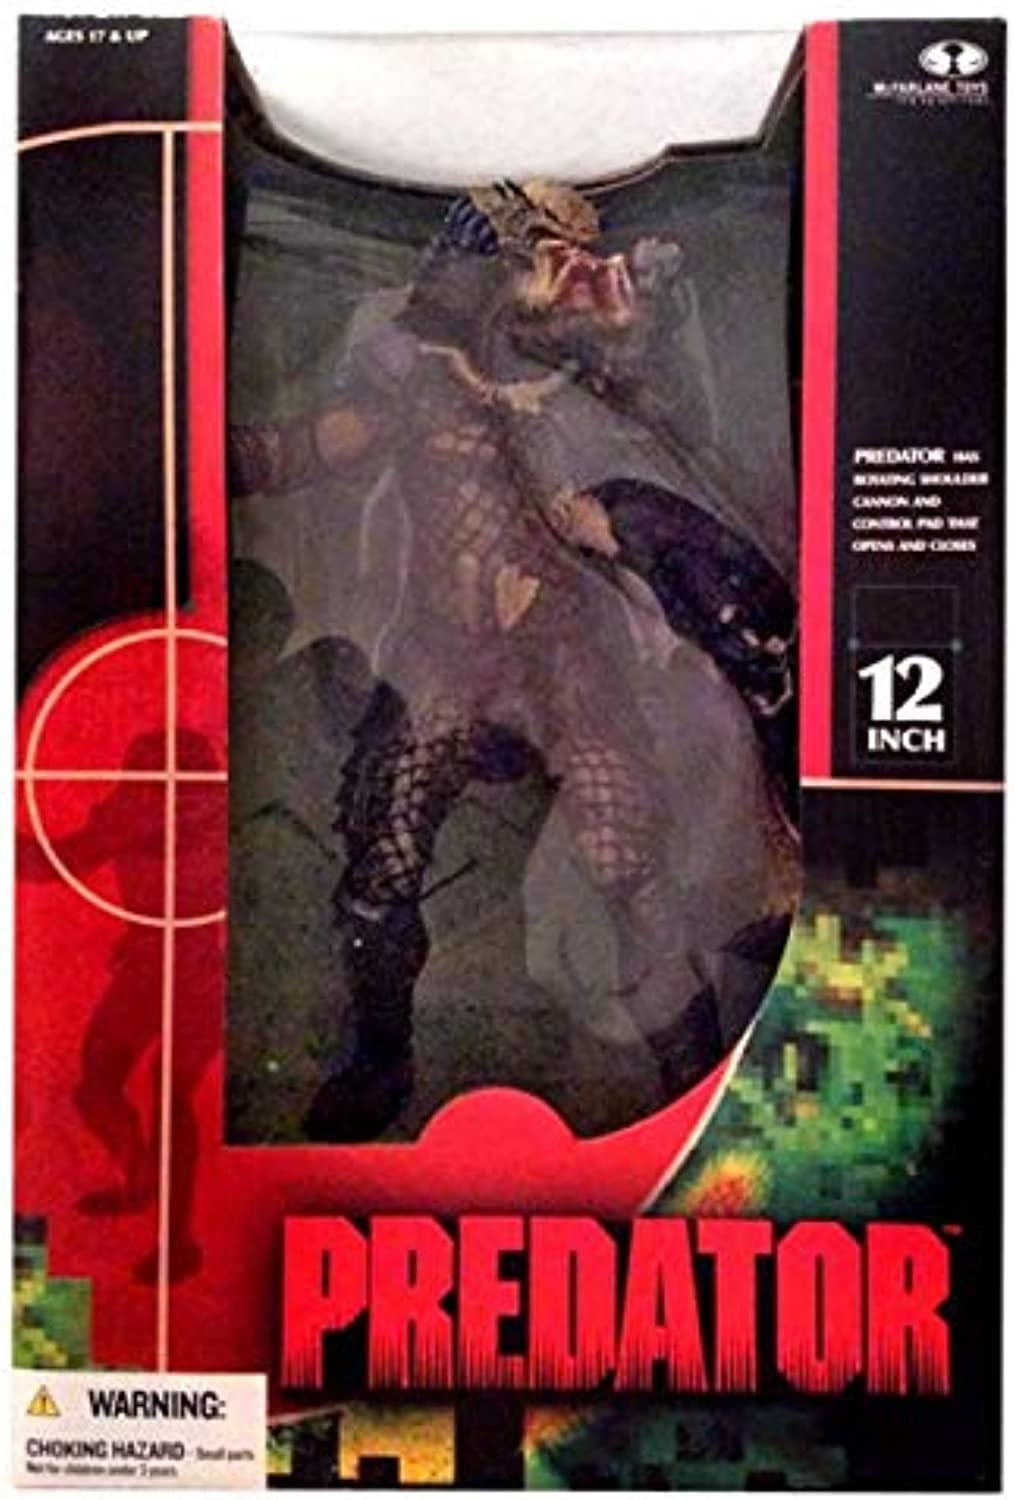 Protator 12in Mcfarlane action figure by Alien Protator